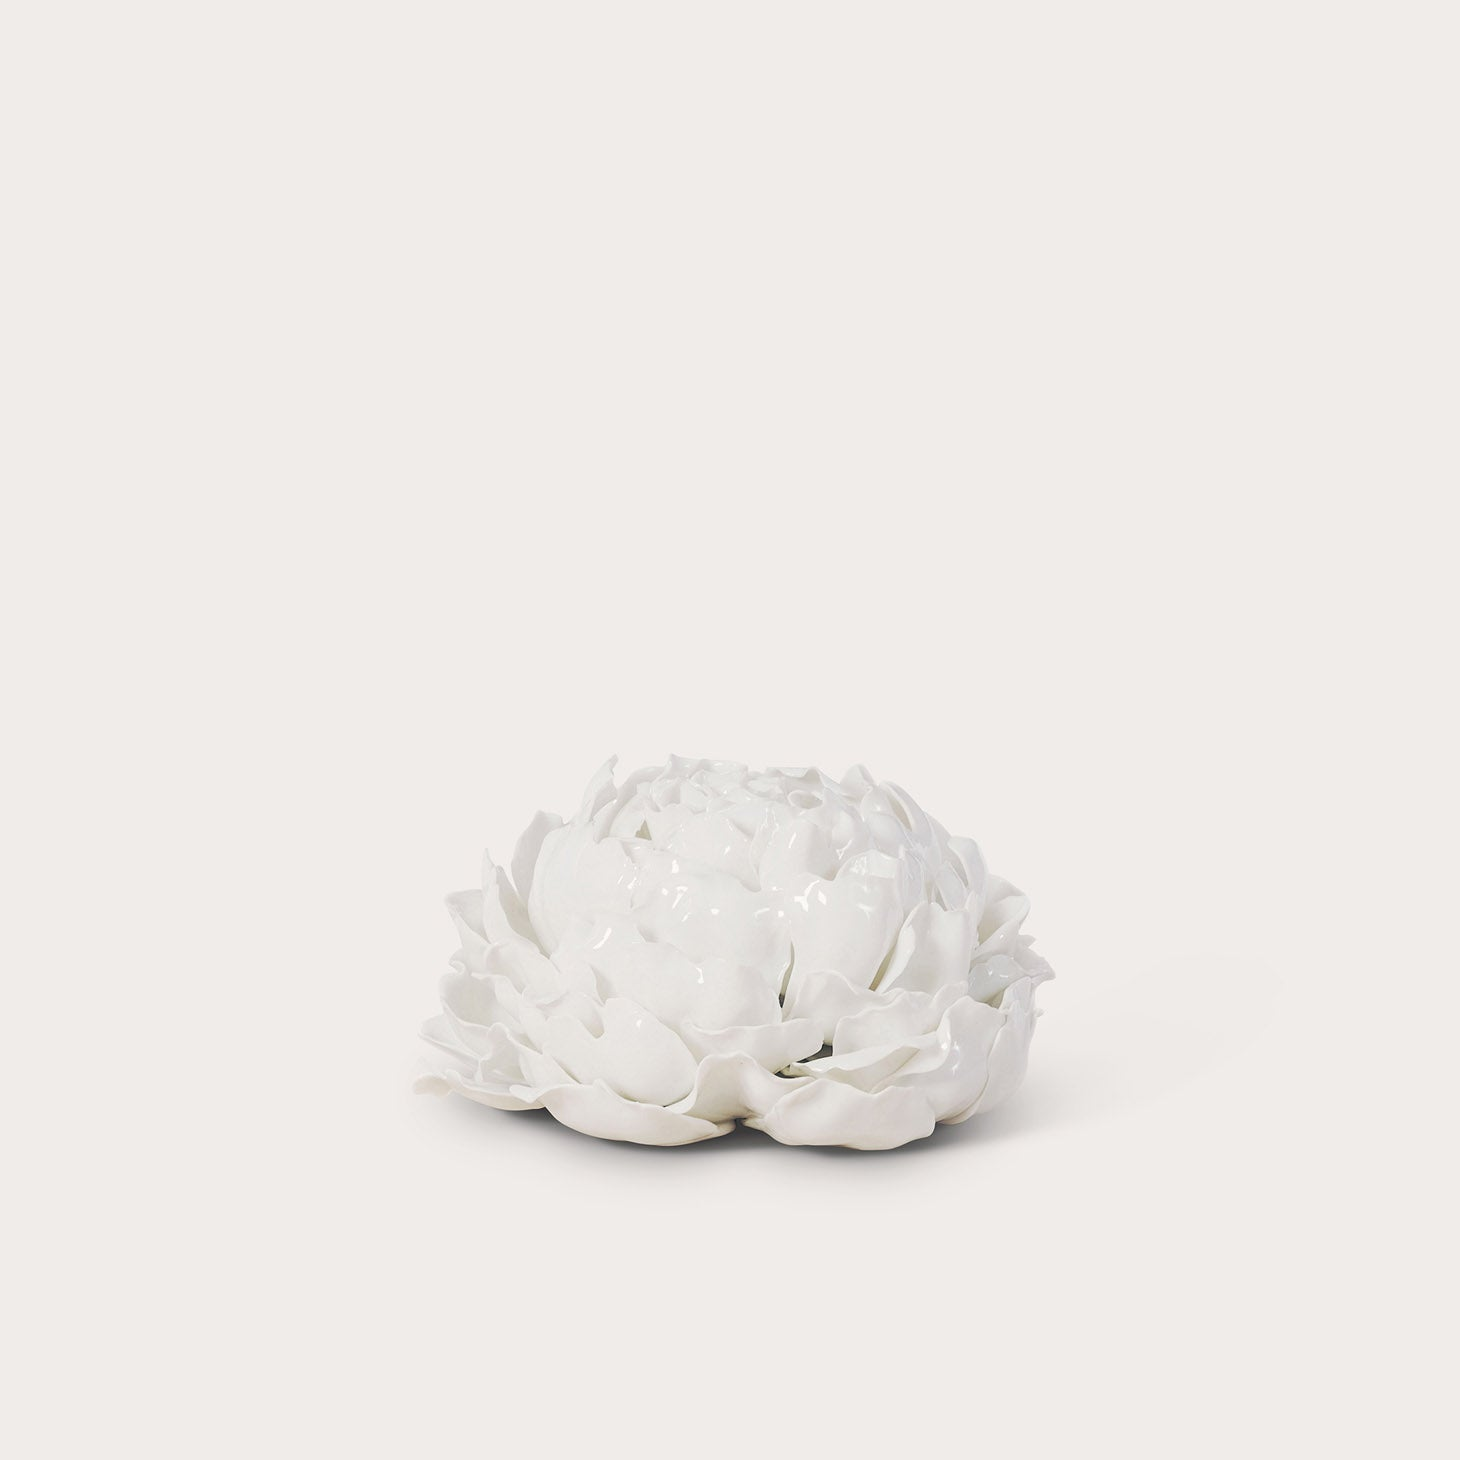 Peony Accessories Nymphenburg Designer Furniture Sku: 542-100-10166